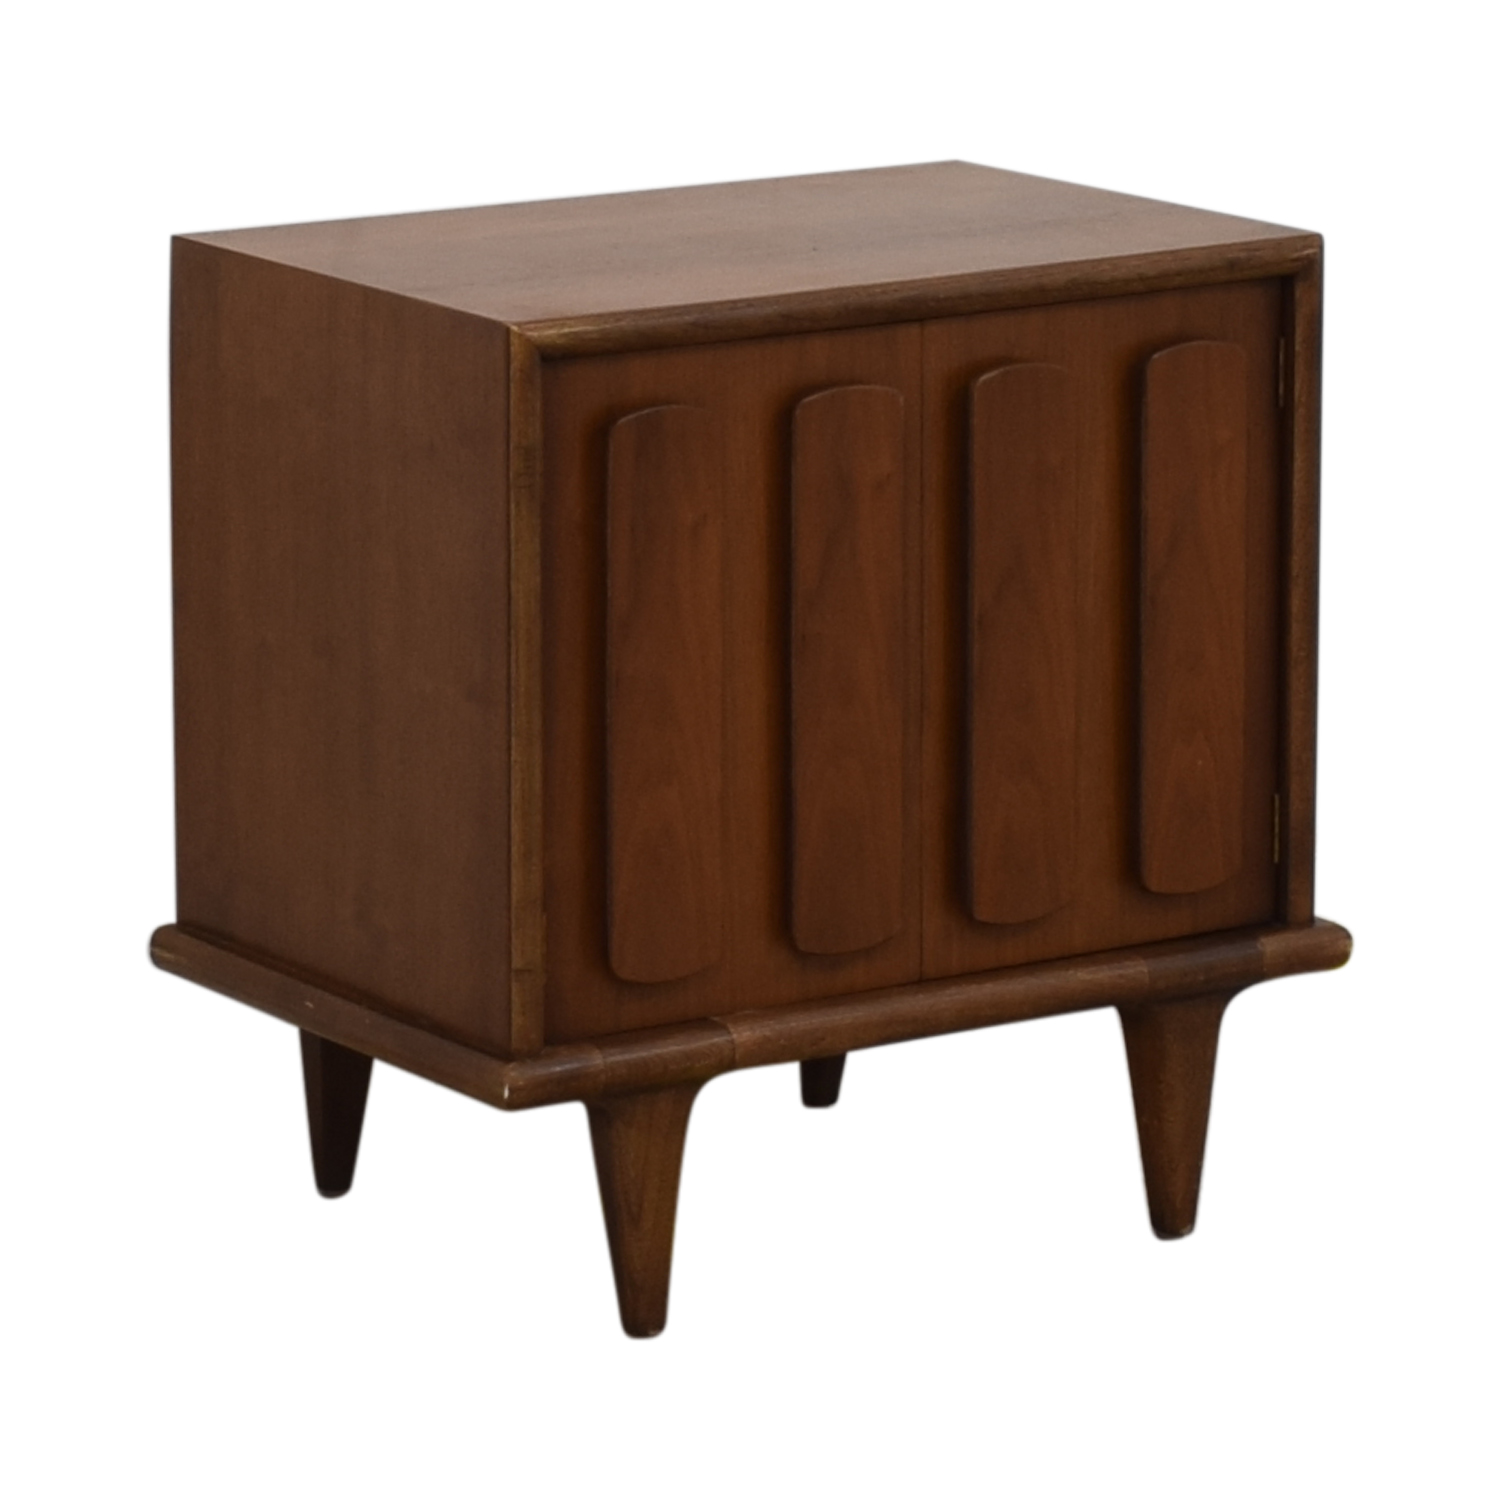 buy American of Martinsville American of Martinsville Mid Century Modern Side Table online